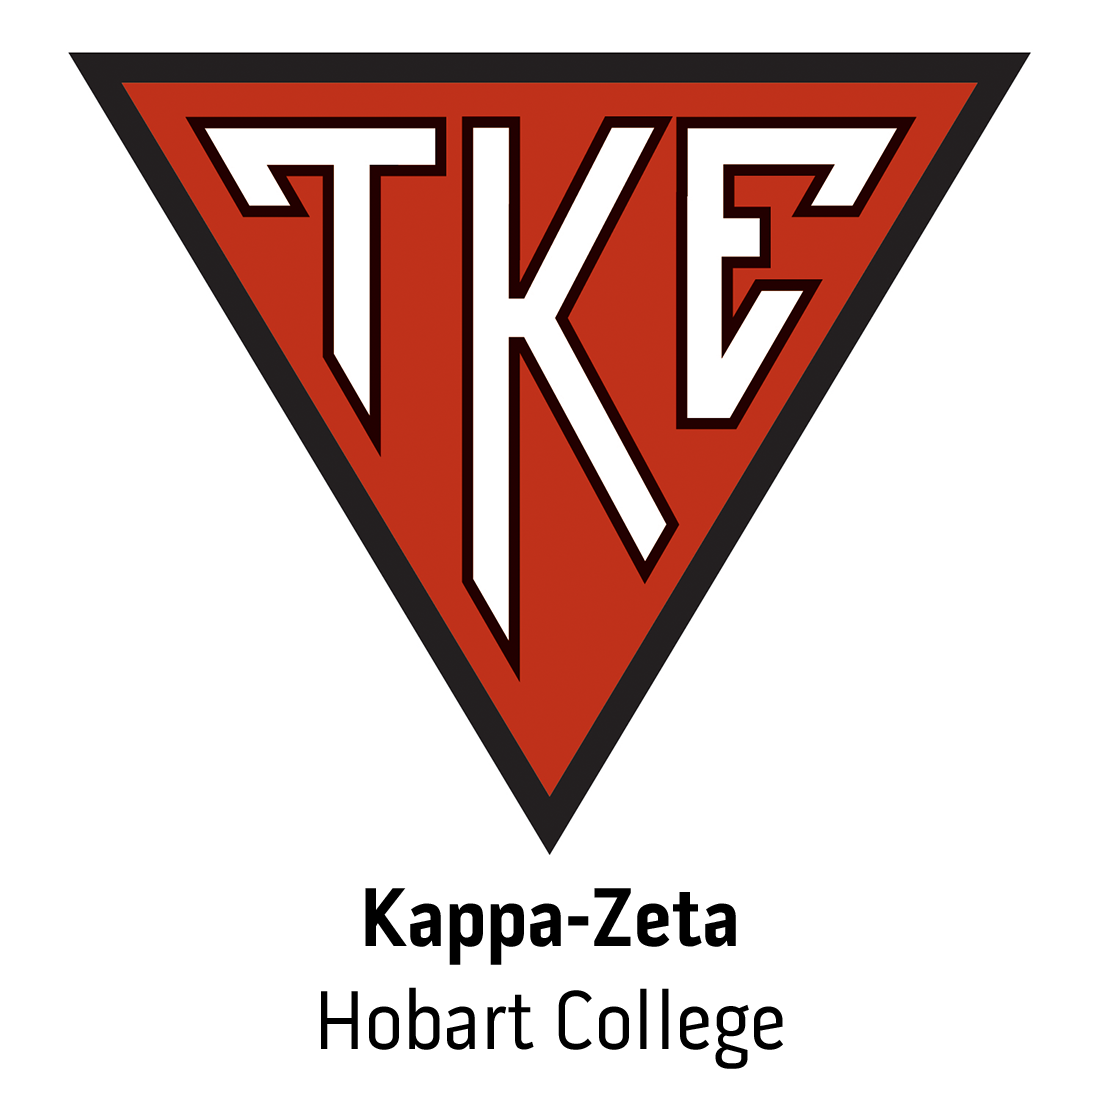 Kappa-Zeta Chapter at Hobart College